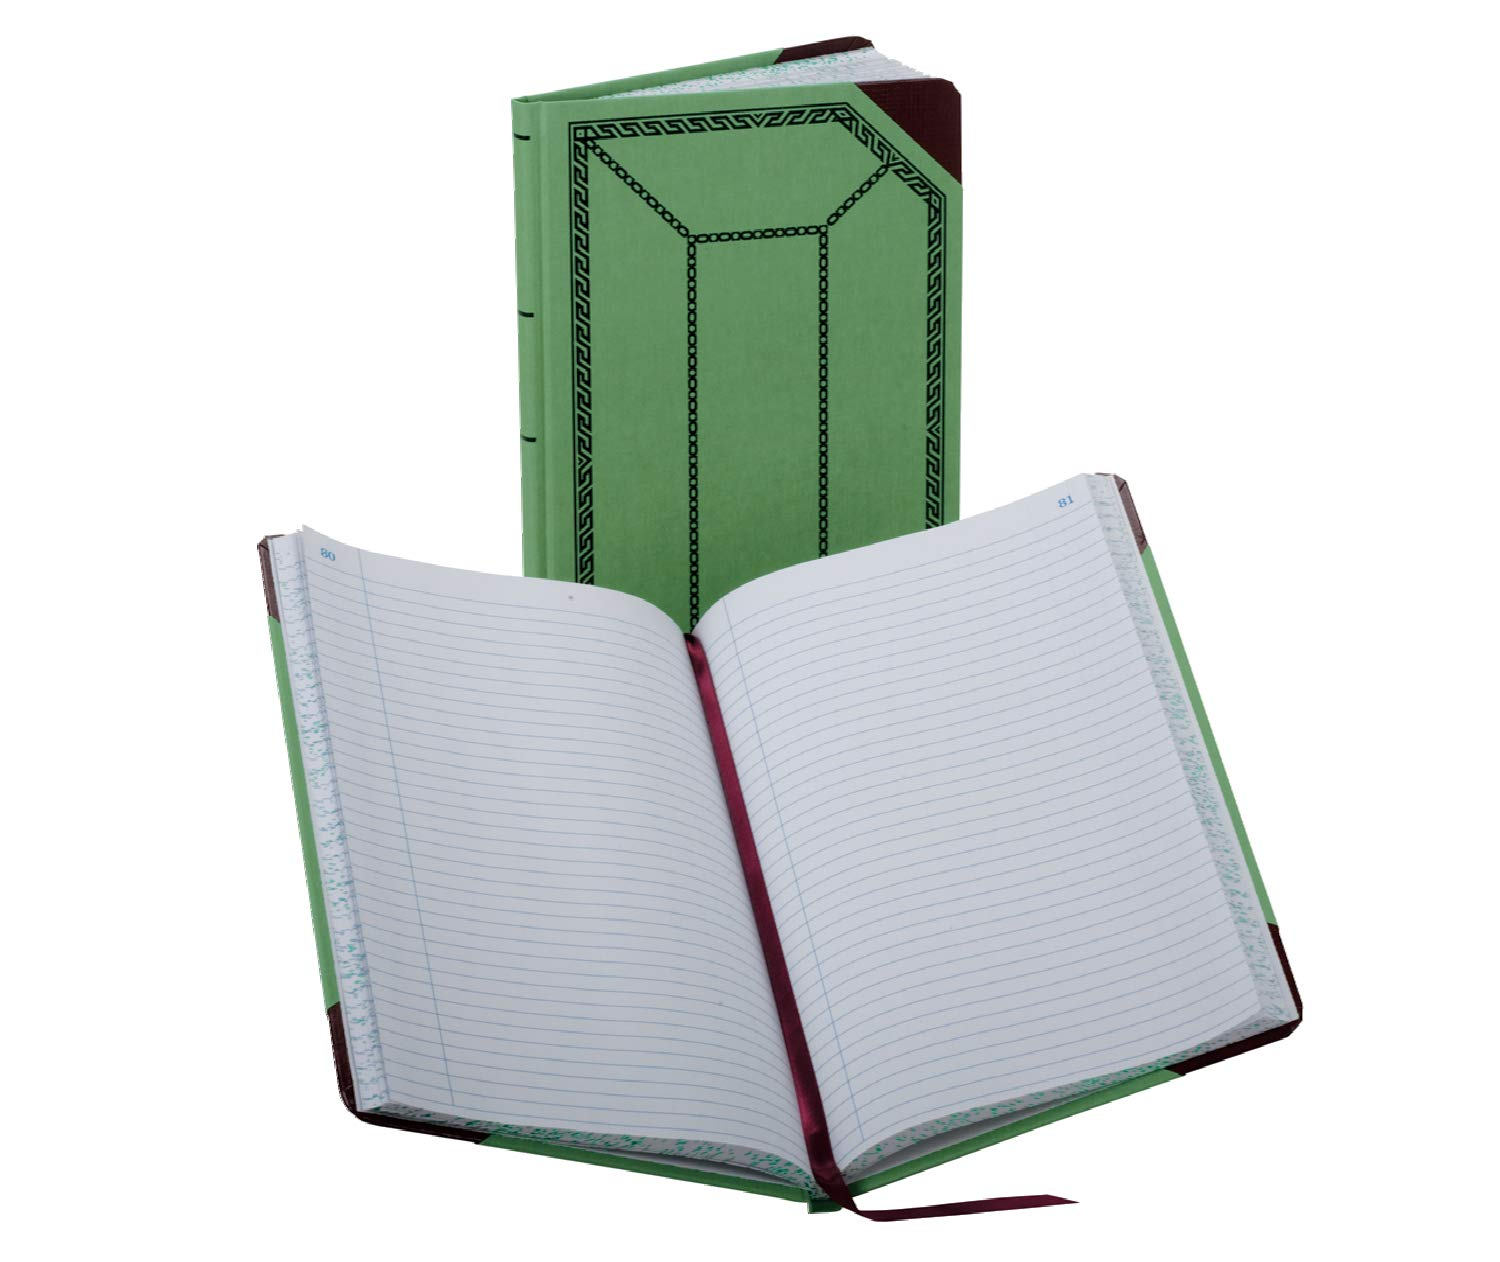 67 1/8-150-R - Record-Ruled Canvas Books